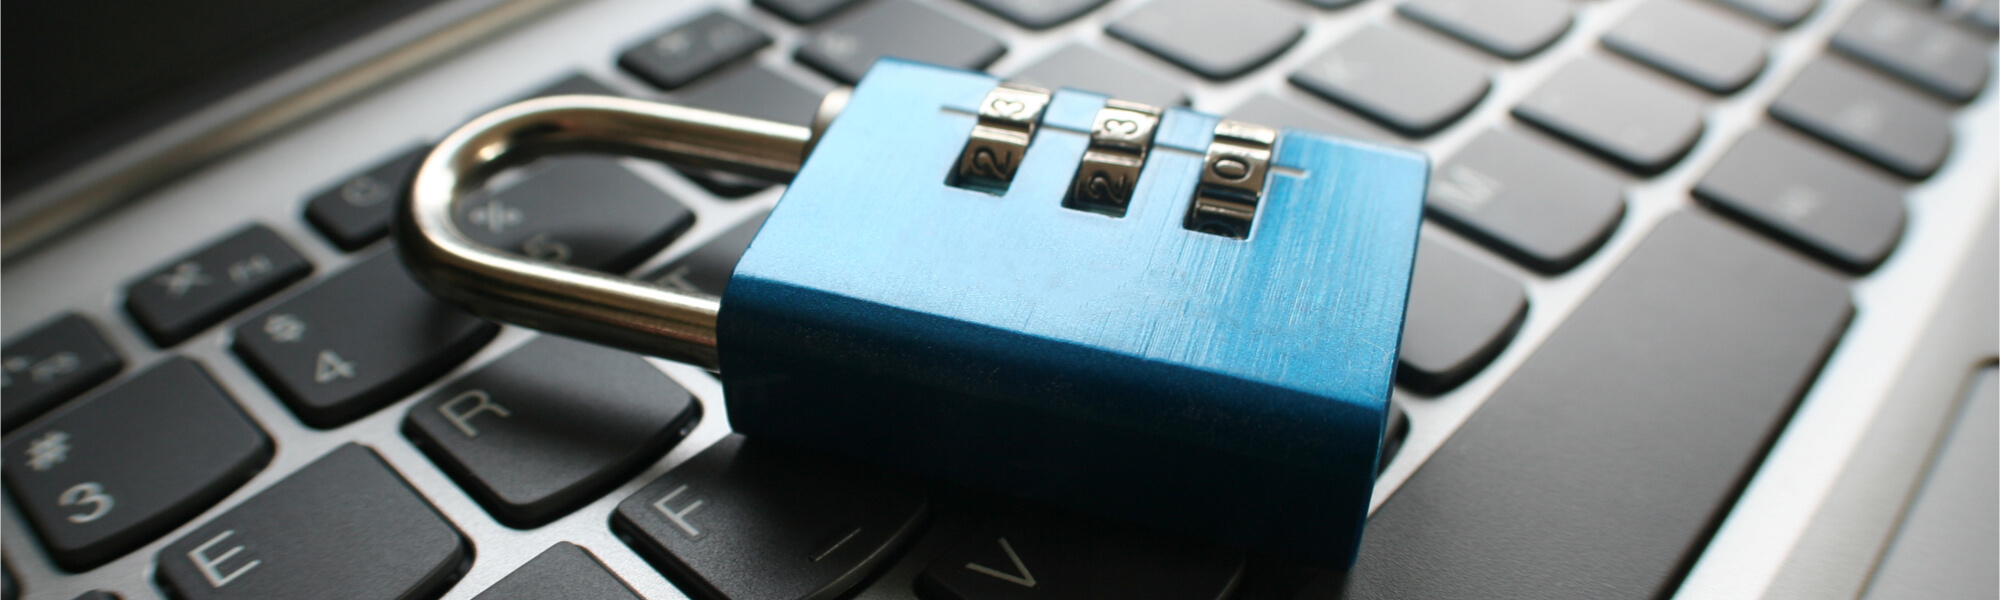 How to Prevent Cyber Fraud During the Holidays and Beyond